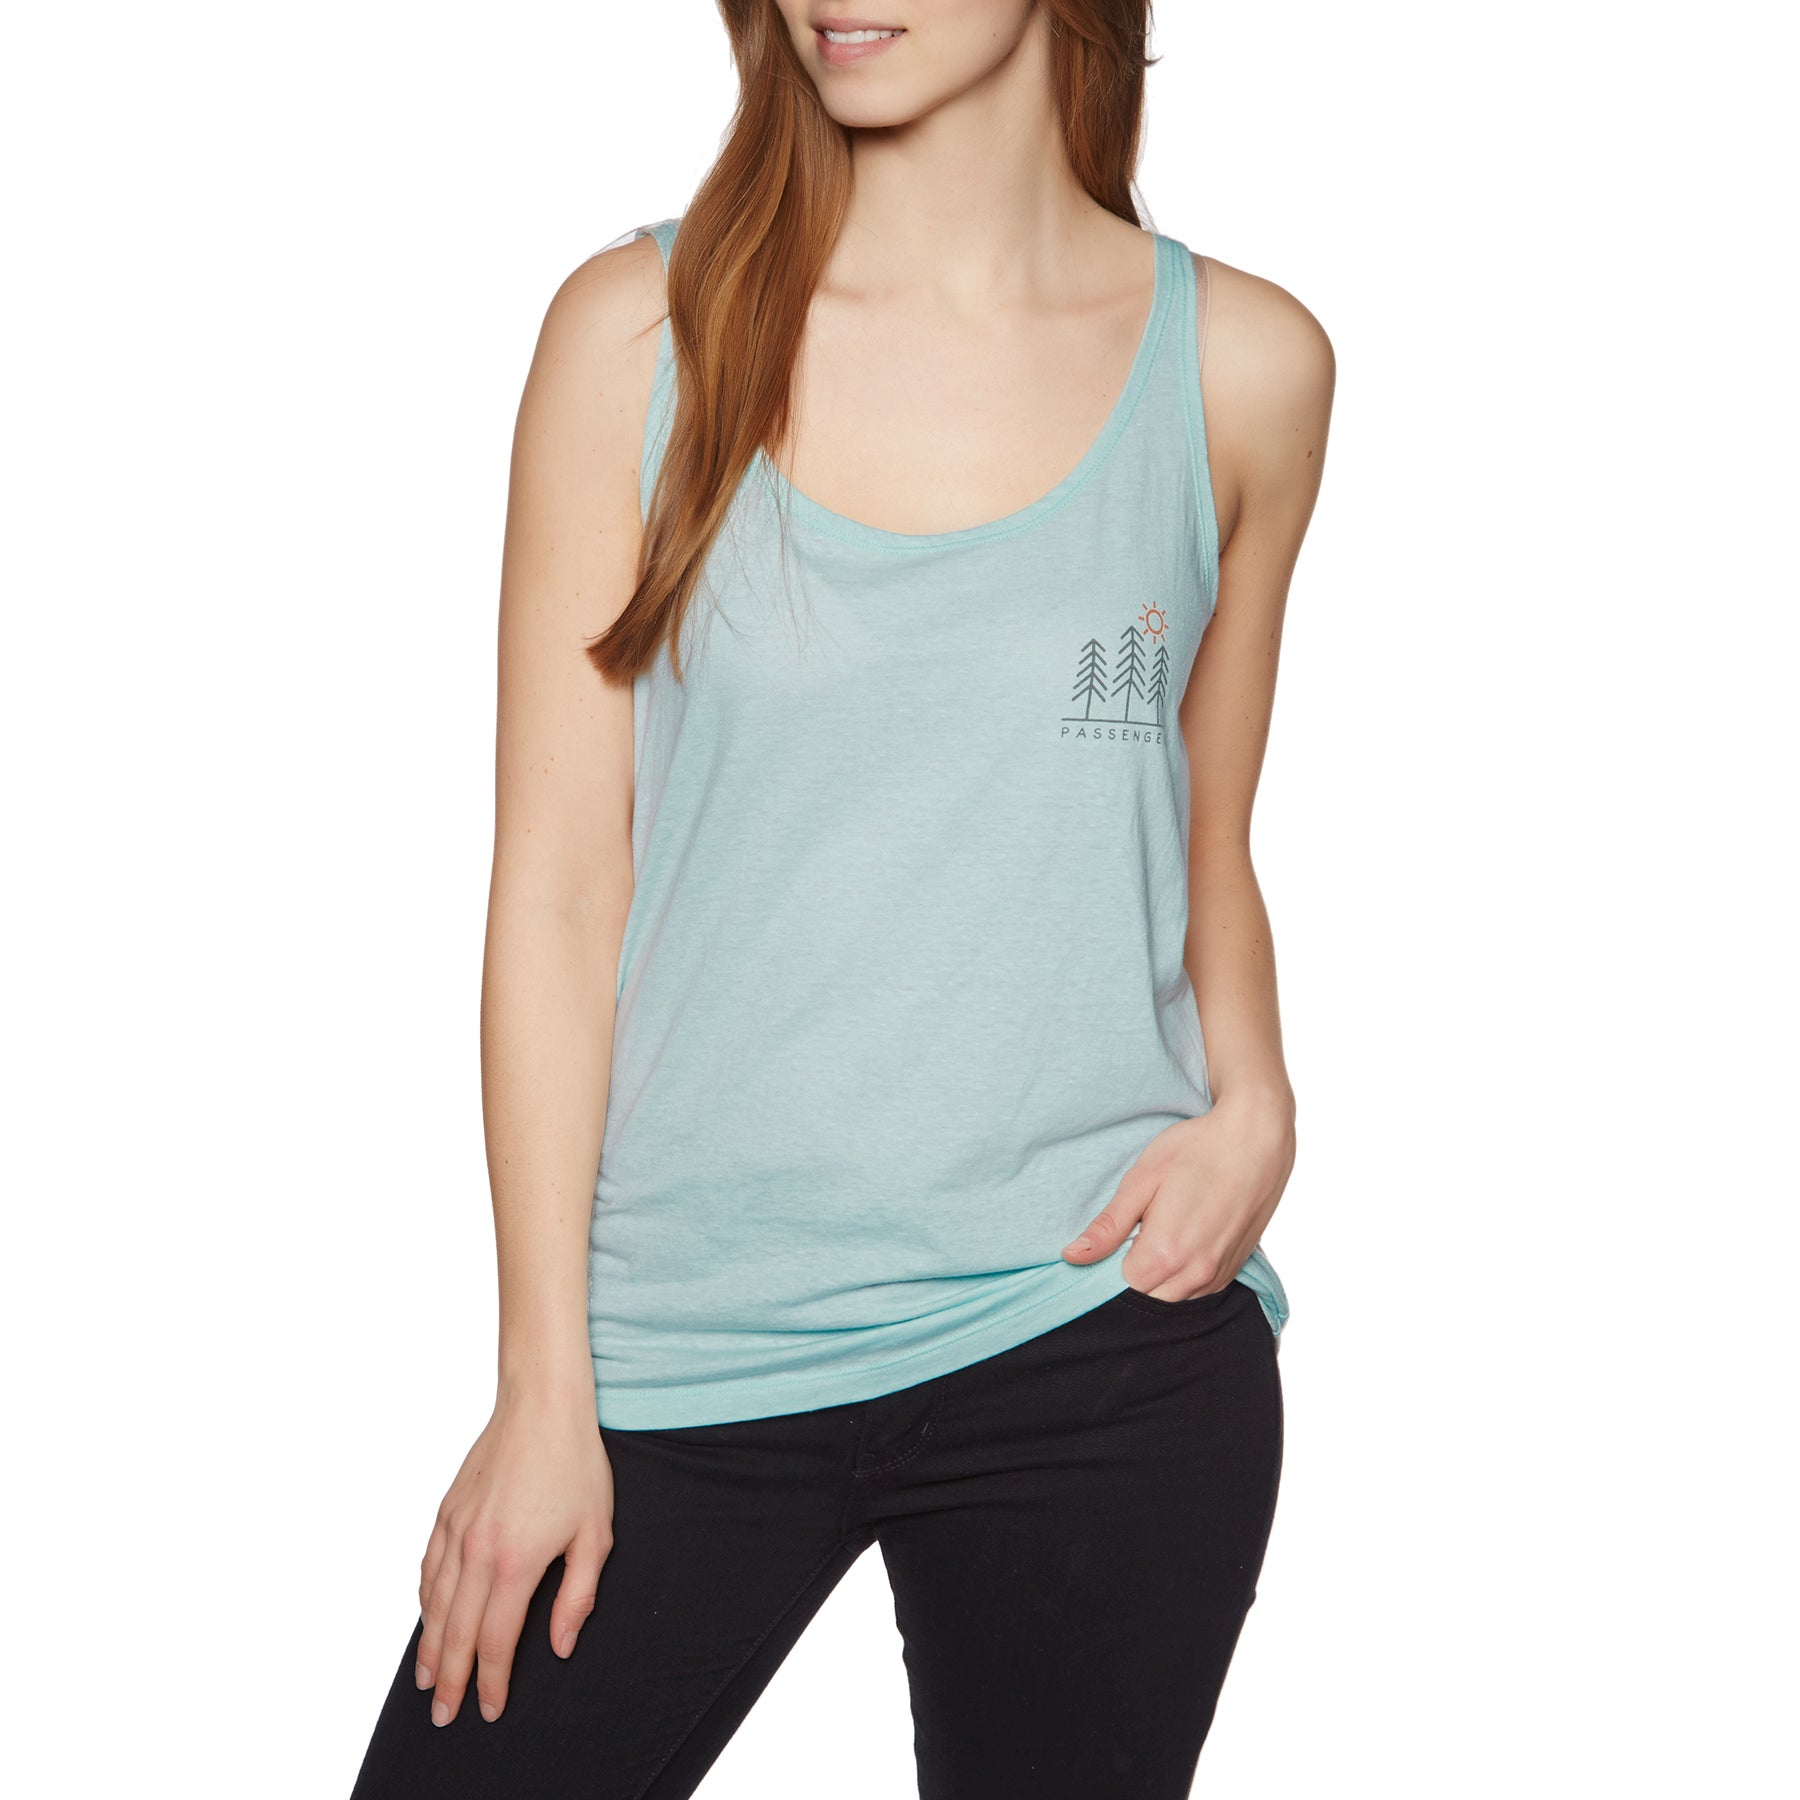 Passenger Clothing Daydream Ladies Top